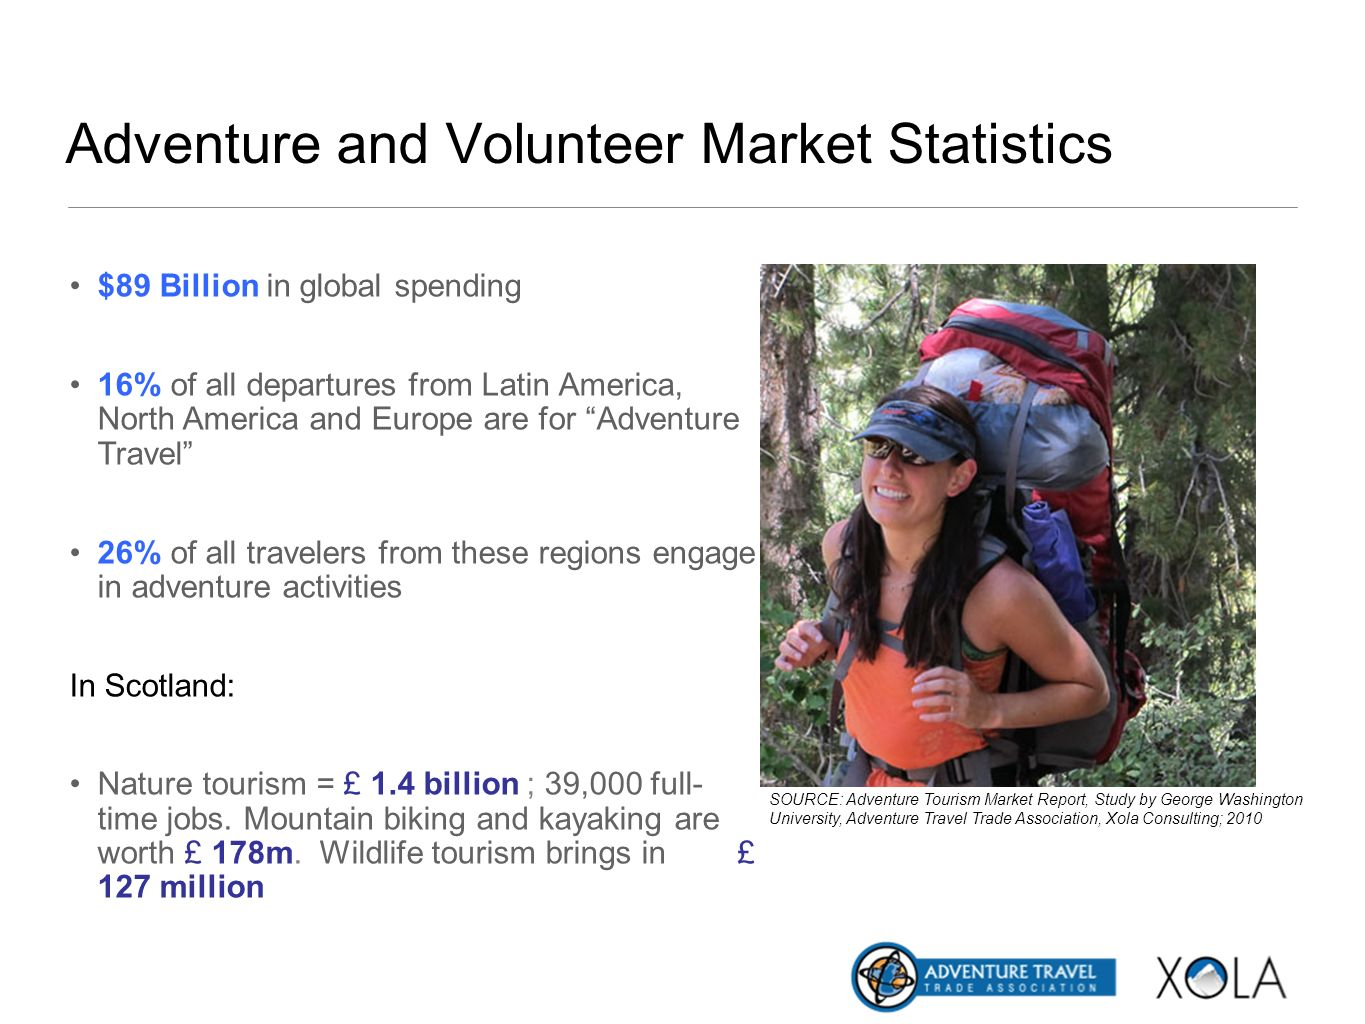 Adventure and Volunteer Market Statistics